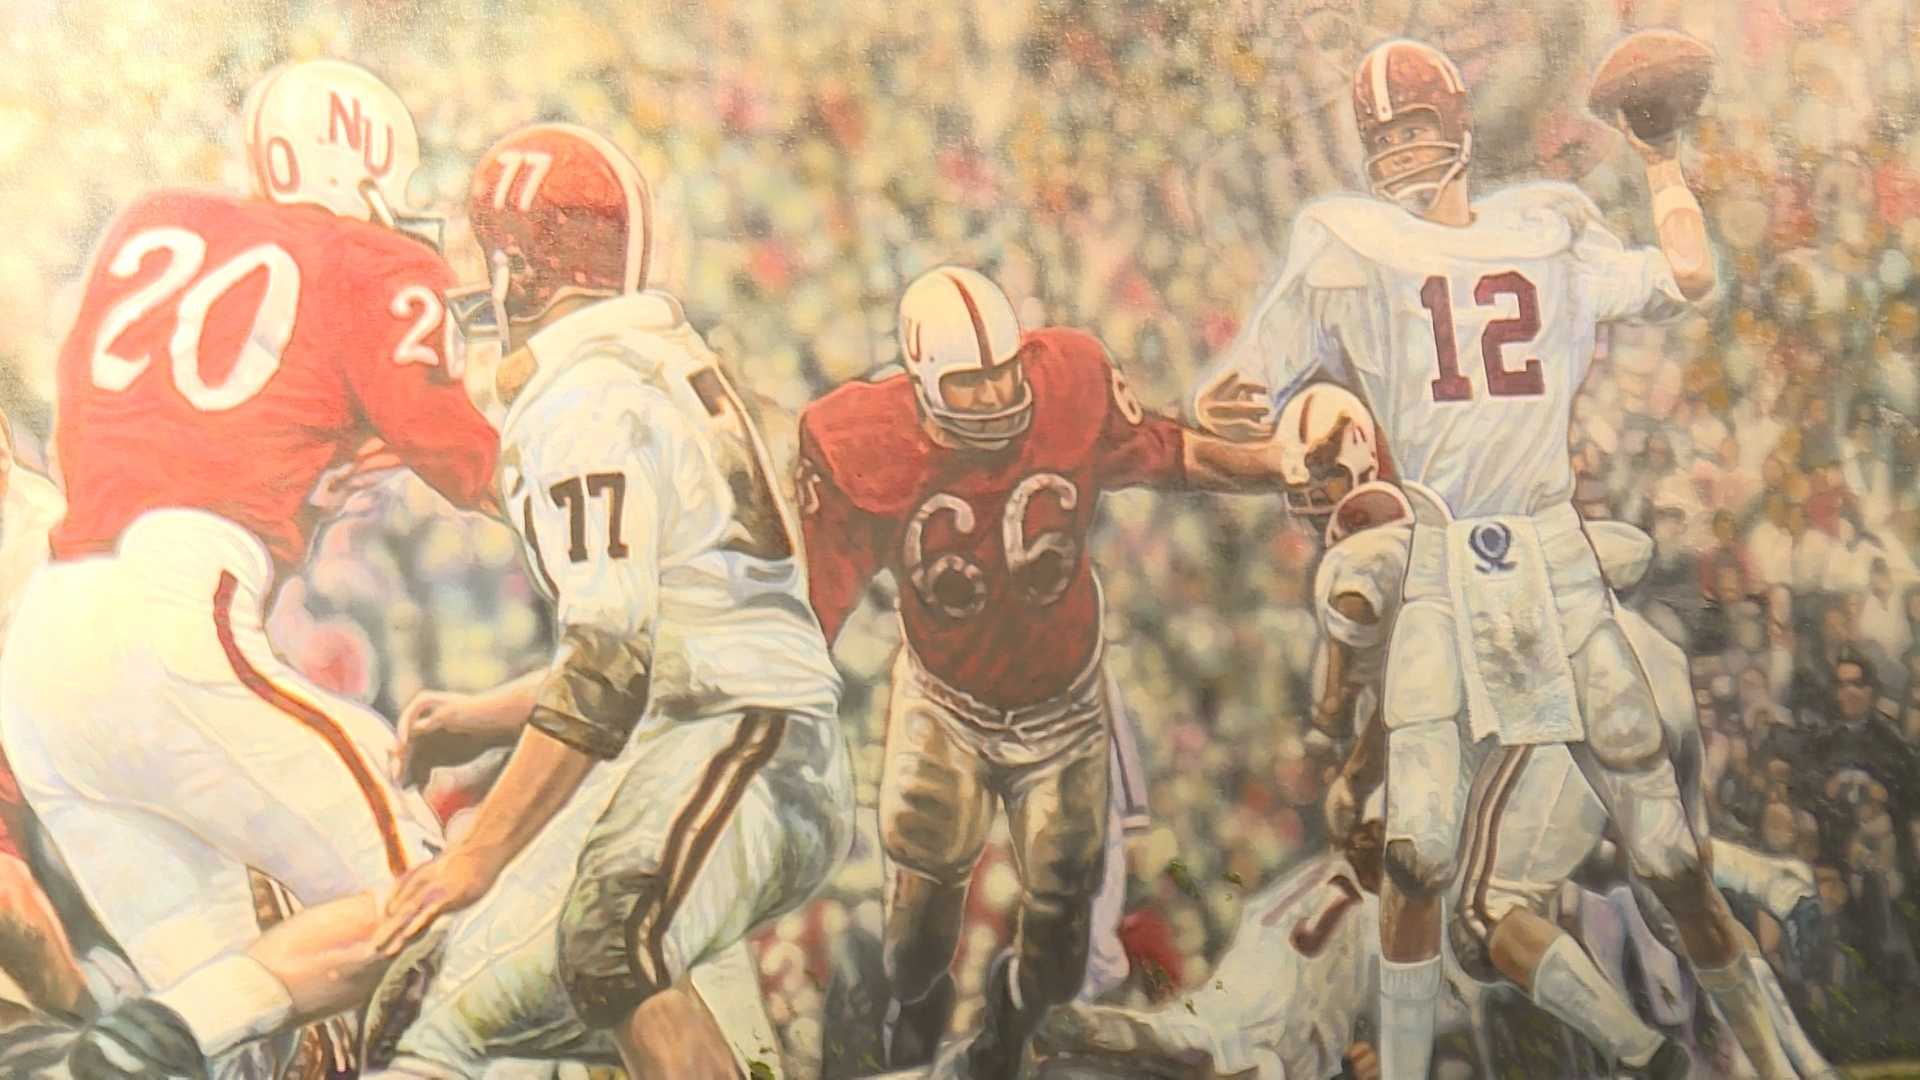 A painting of legendary Alabama quarterback Kenny Stabler was unveiled at Bryant Museum on Saturday, a little more than a year after his death.